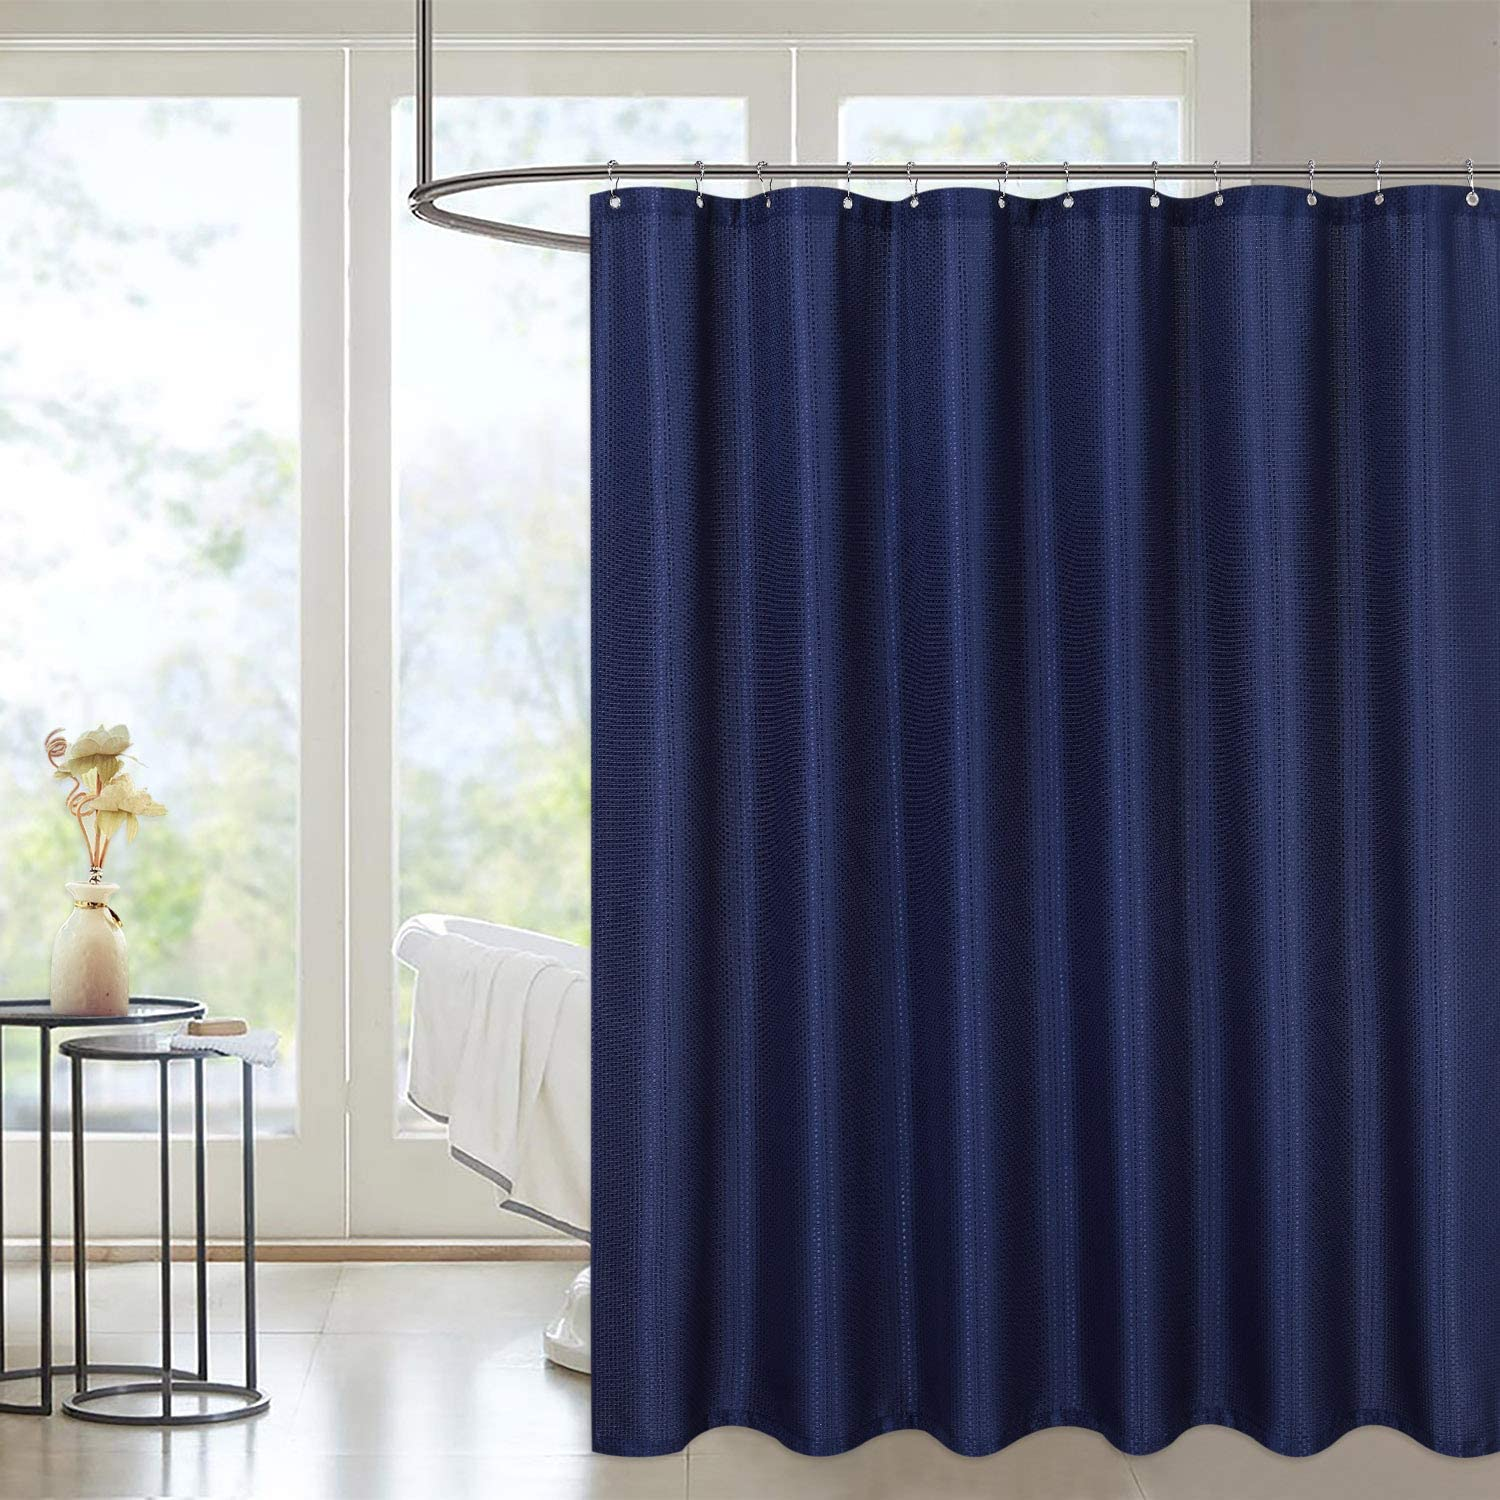 """LinTimes Waterproof Bathroom Curtains Anti Mould Polyester Shower Curtains Navy Waffle Bathtub Curtain, 72x78 inches Navy 183*198cm(72""""*78"""")"""